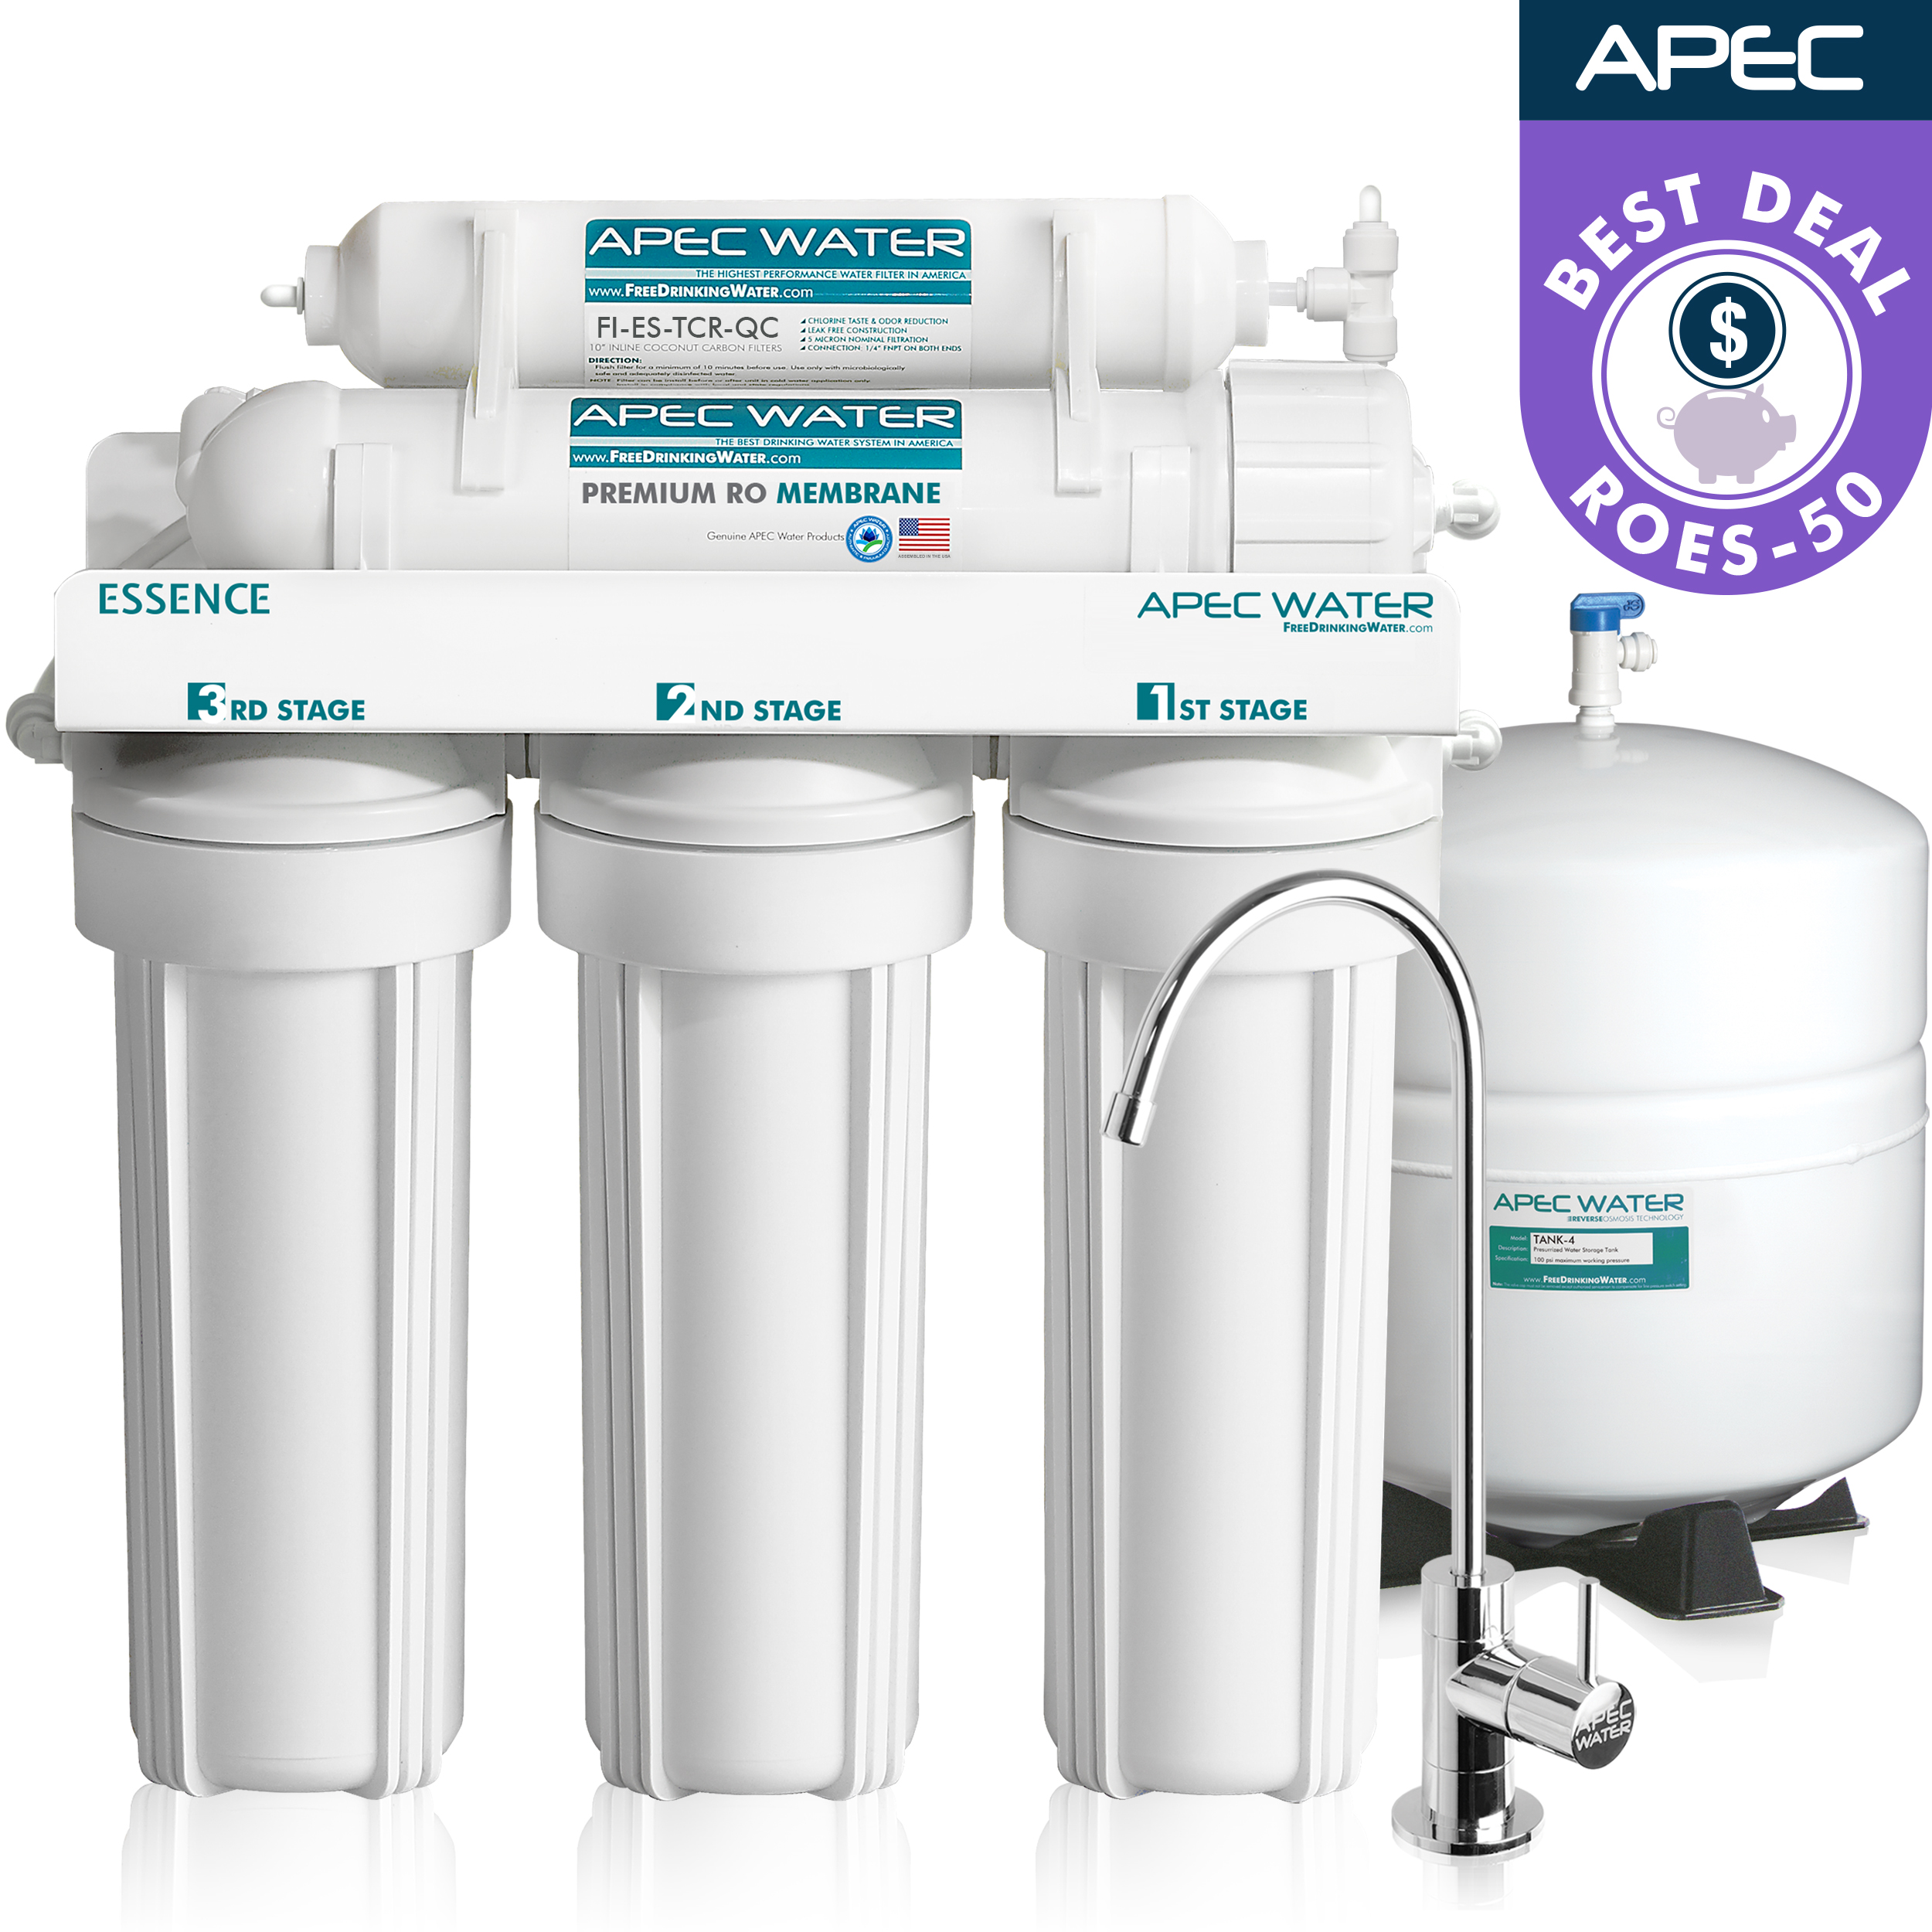 APEC Ultra Safe Reverse Osmosis Drinking Water Filter System (ESSENCE ROES-50)